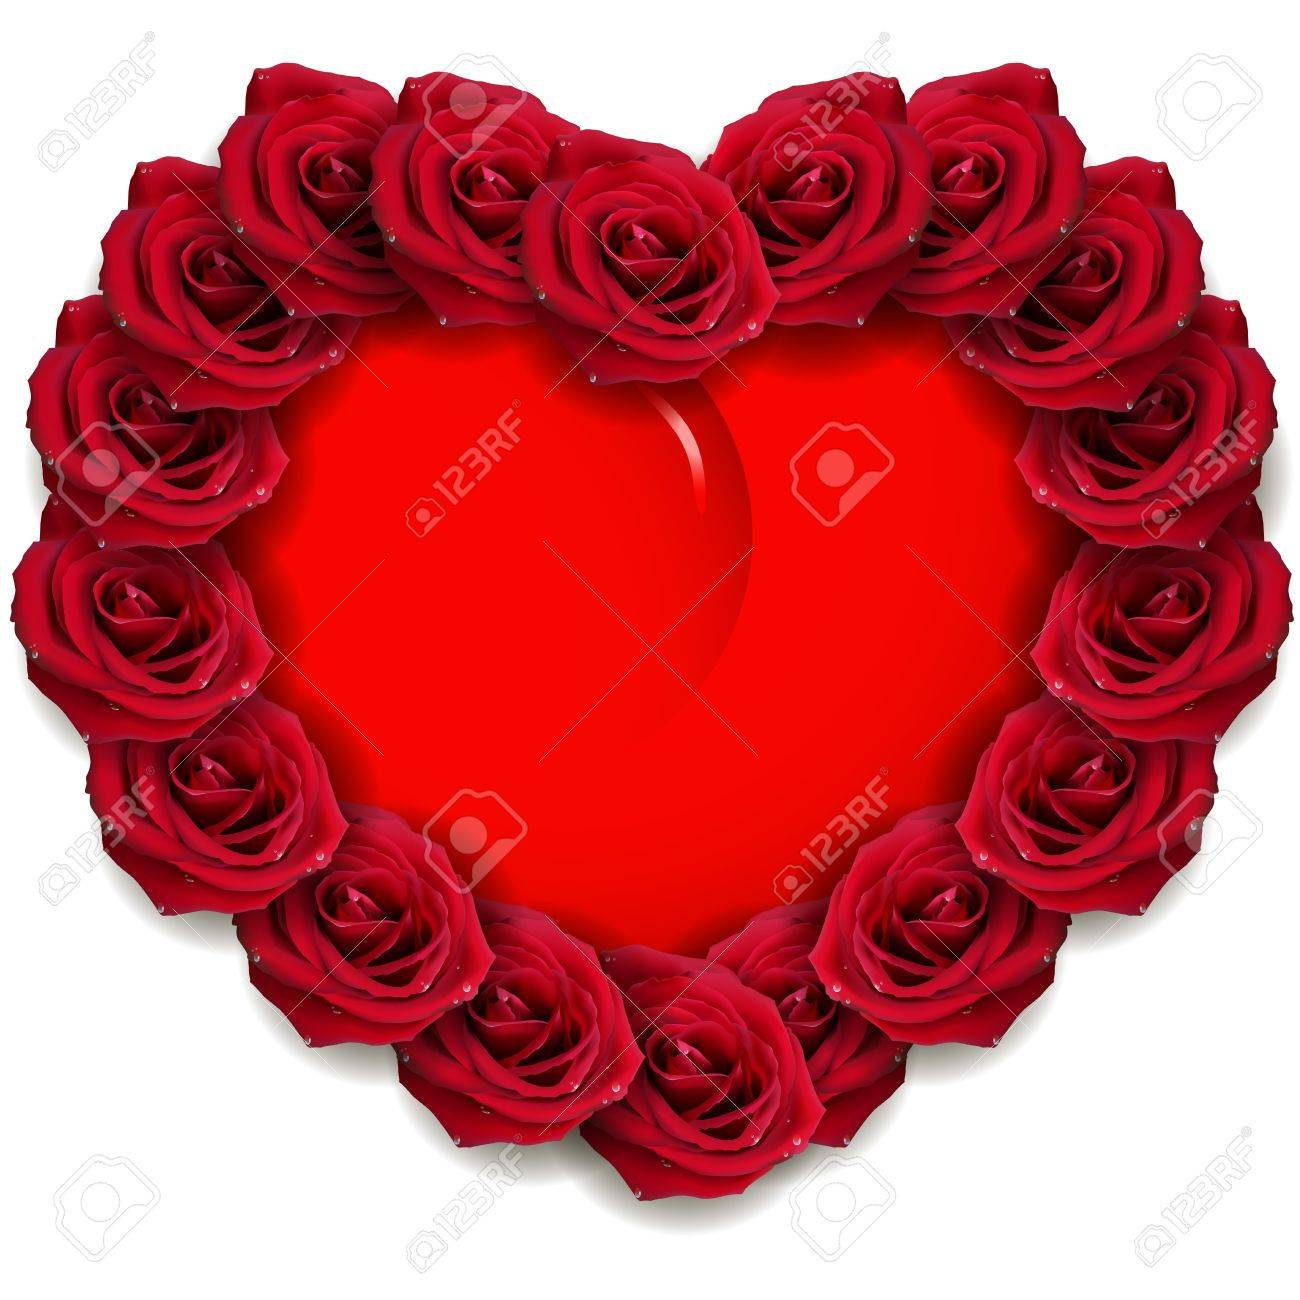 illustration, red roses around a red heart Stock Vector - 11970320